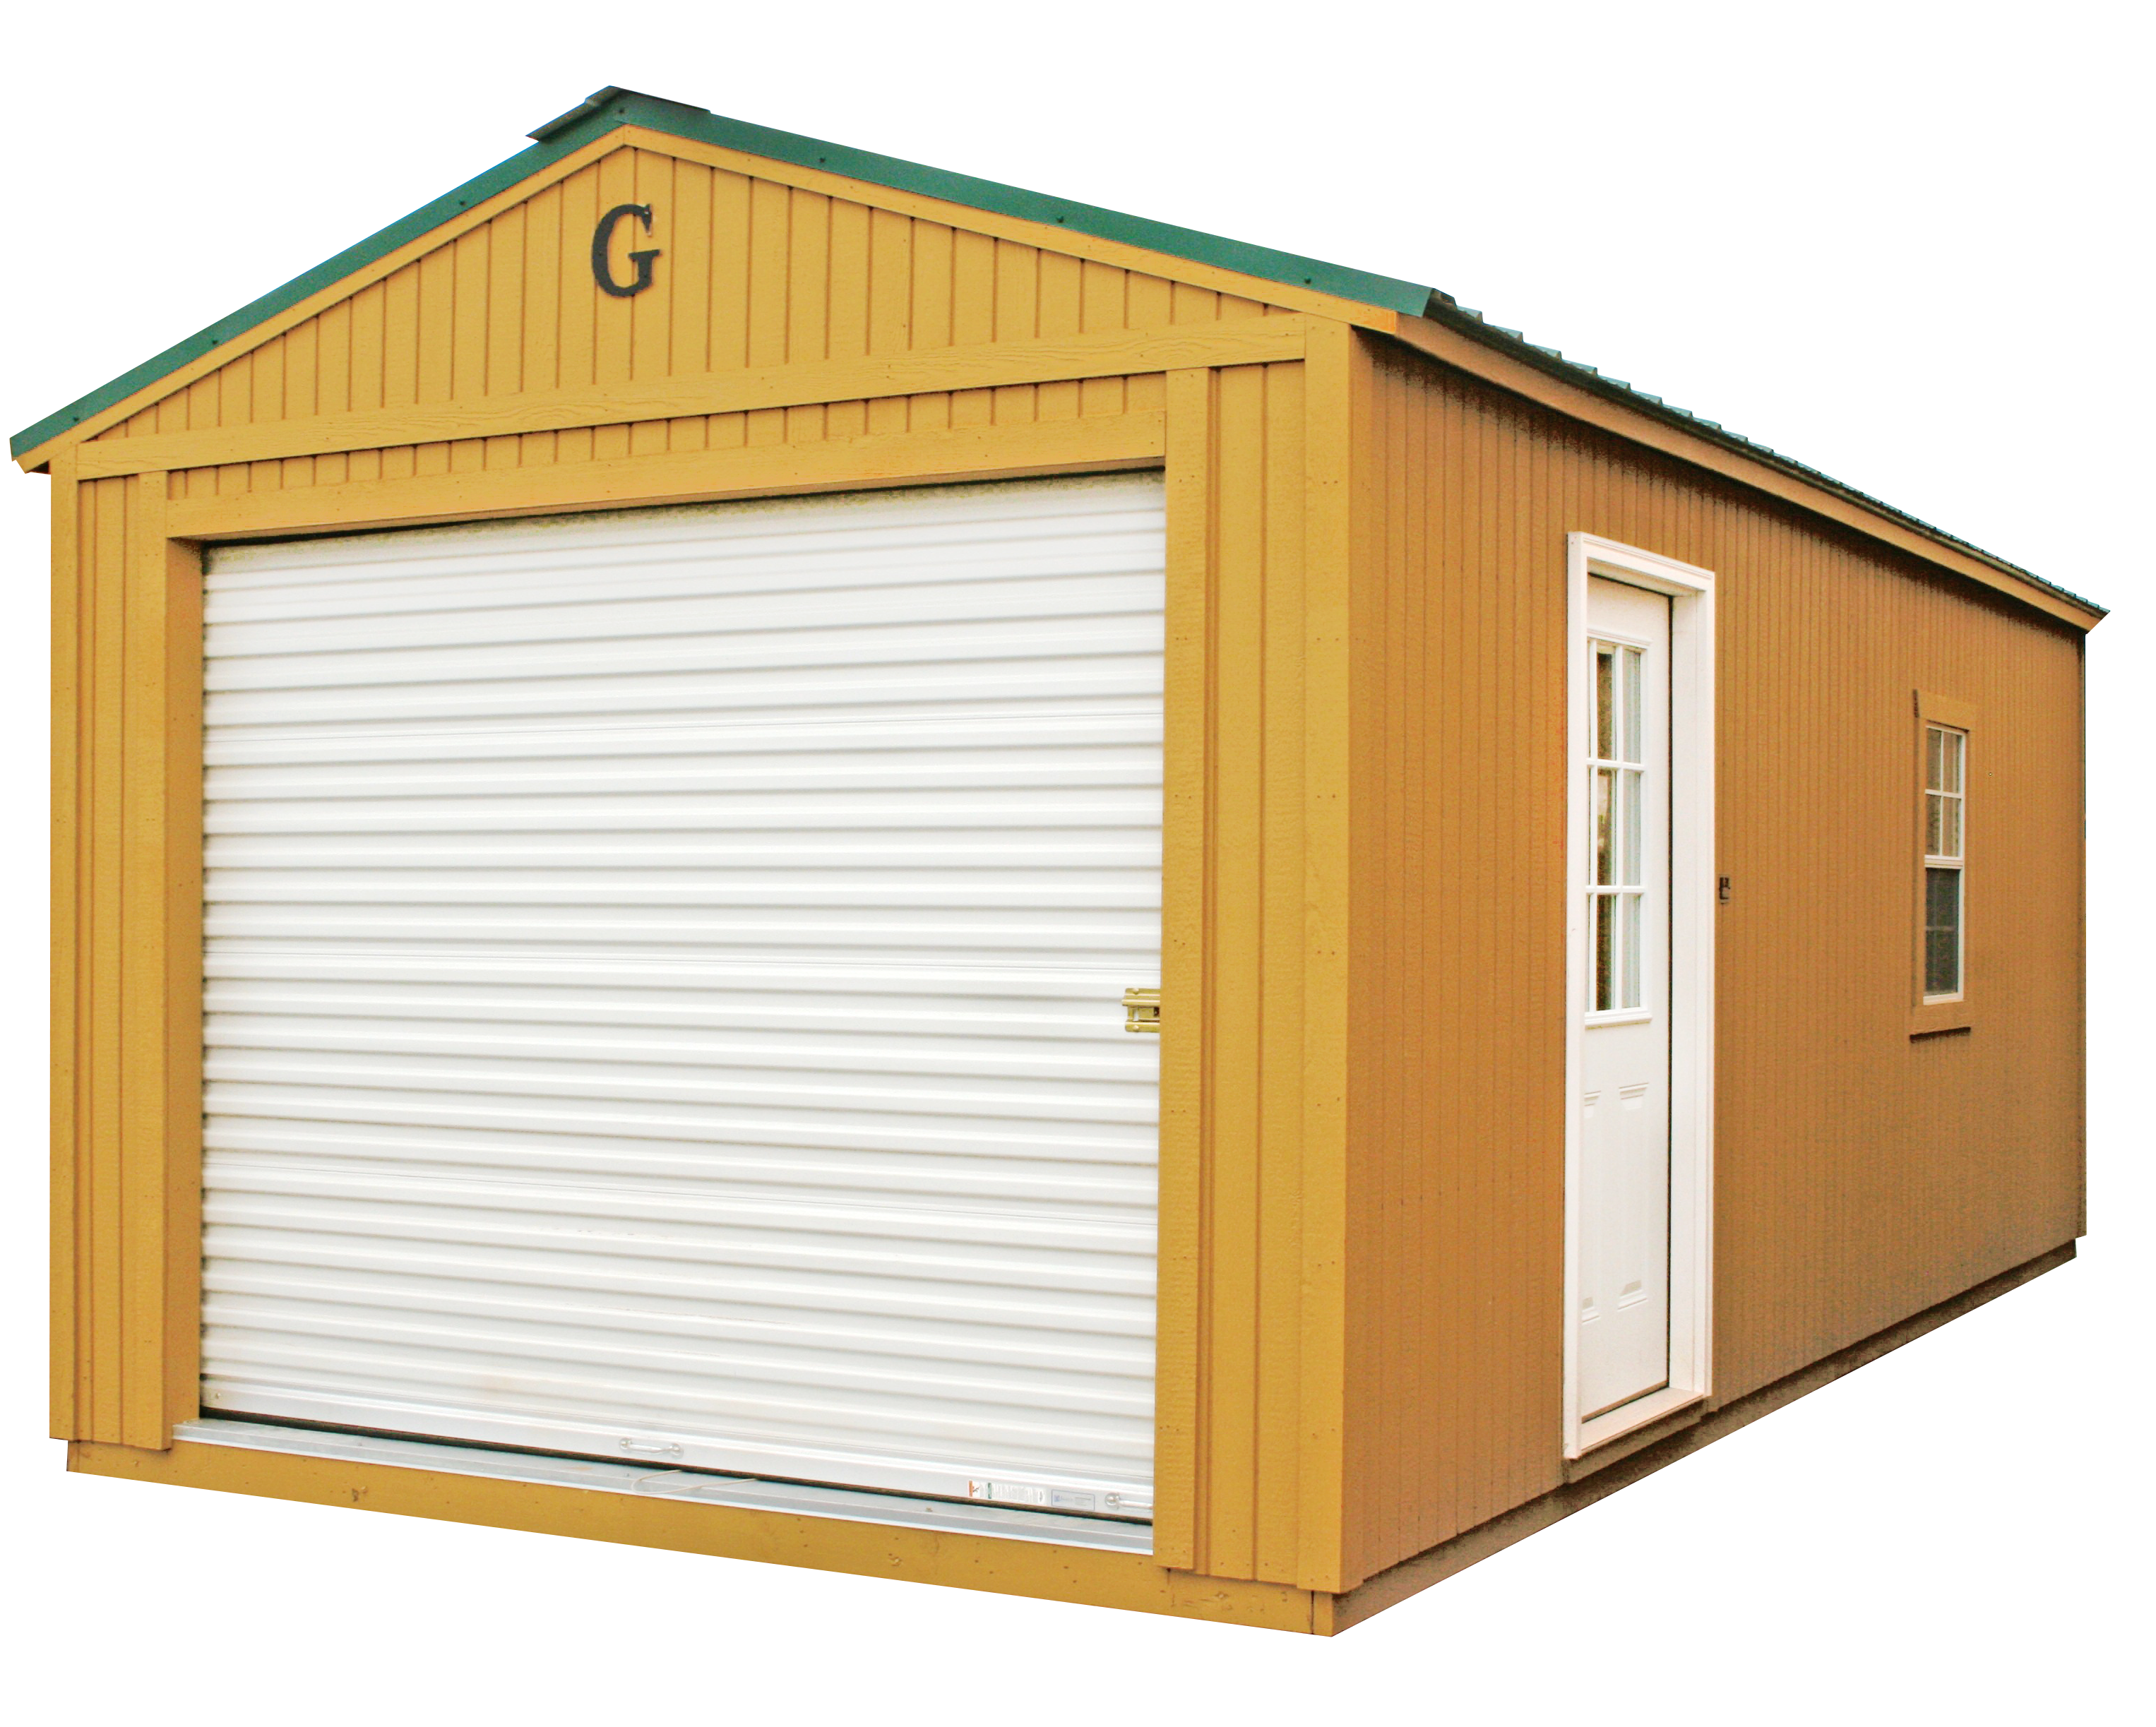 shed in nylon reviews woven x portable flowerhouse outdoor storagehouse wayfair w storage ft sheds pdx